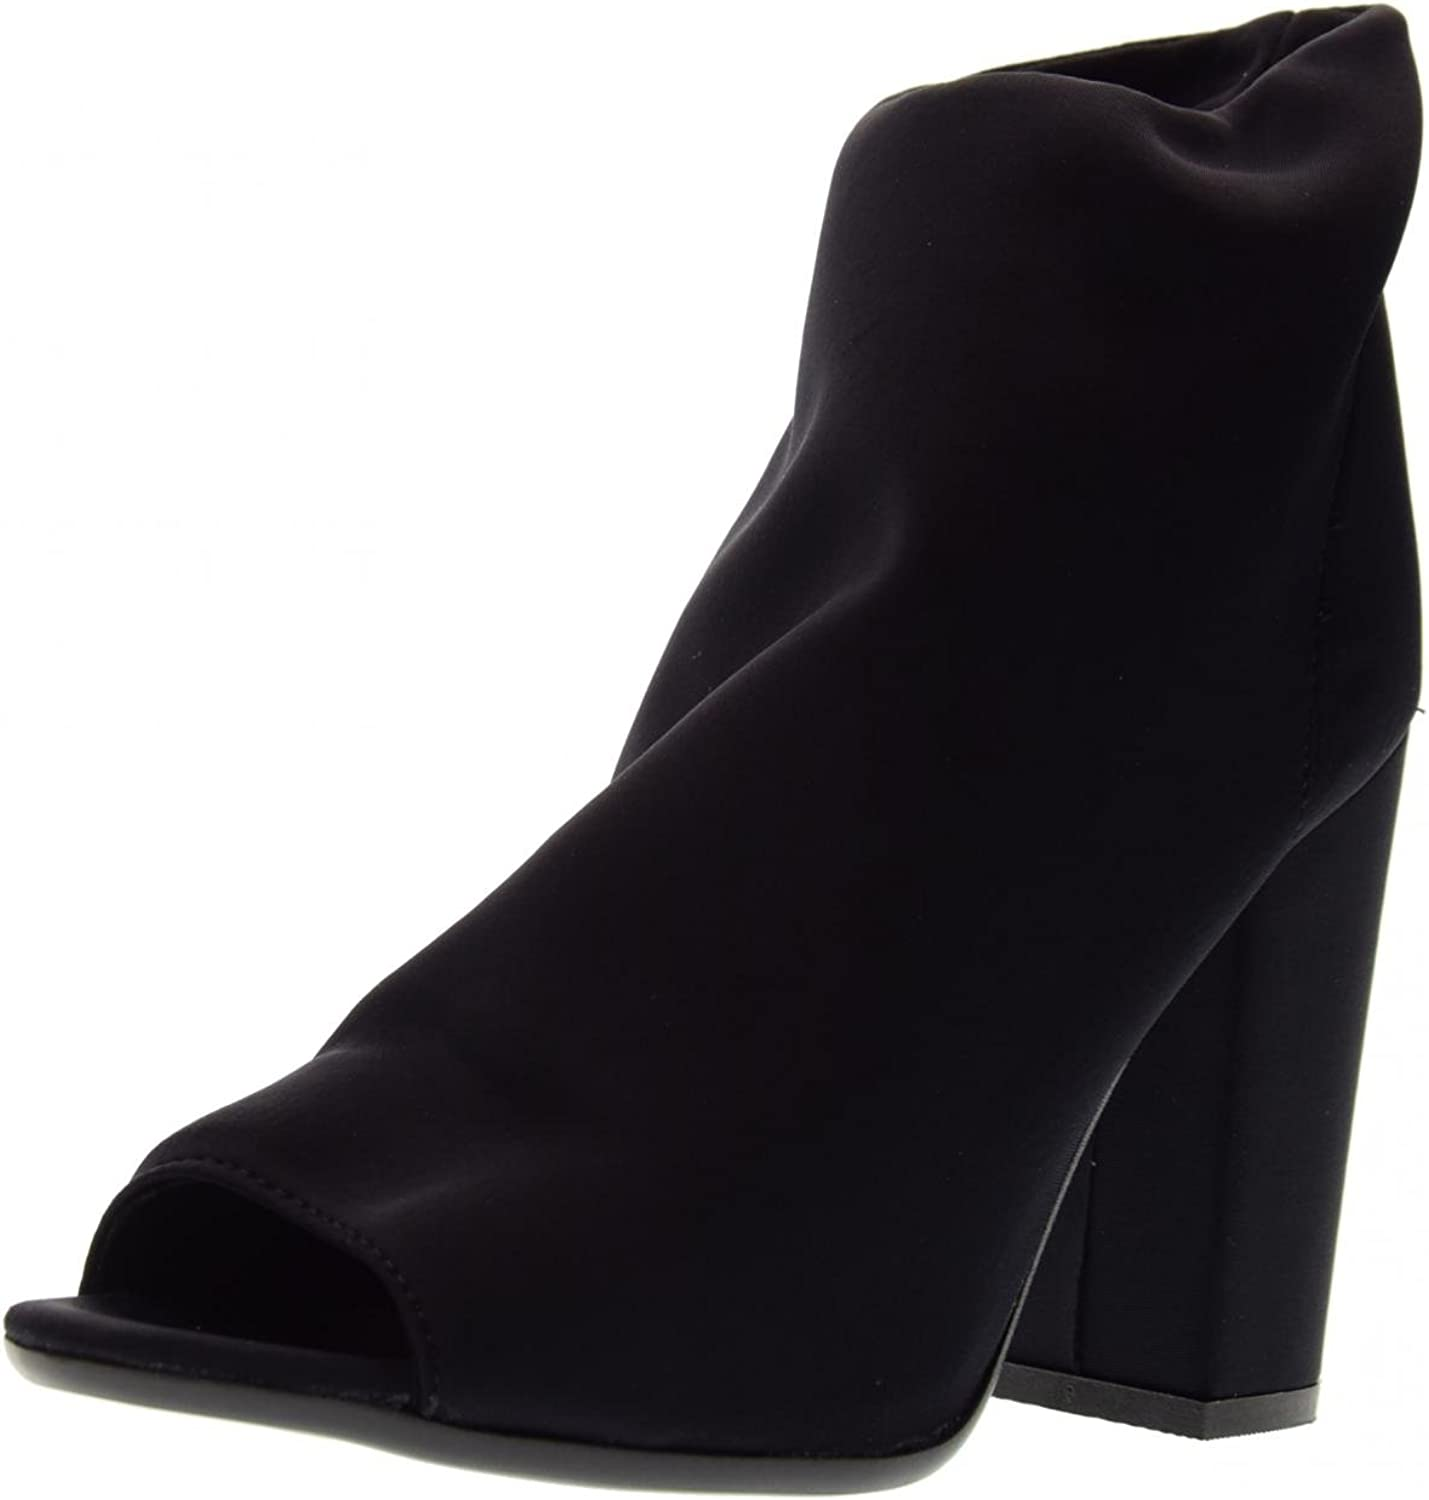 OVYE Women's shoes Ankle Boot DL-MARC20 Black